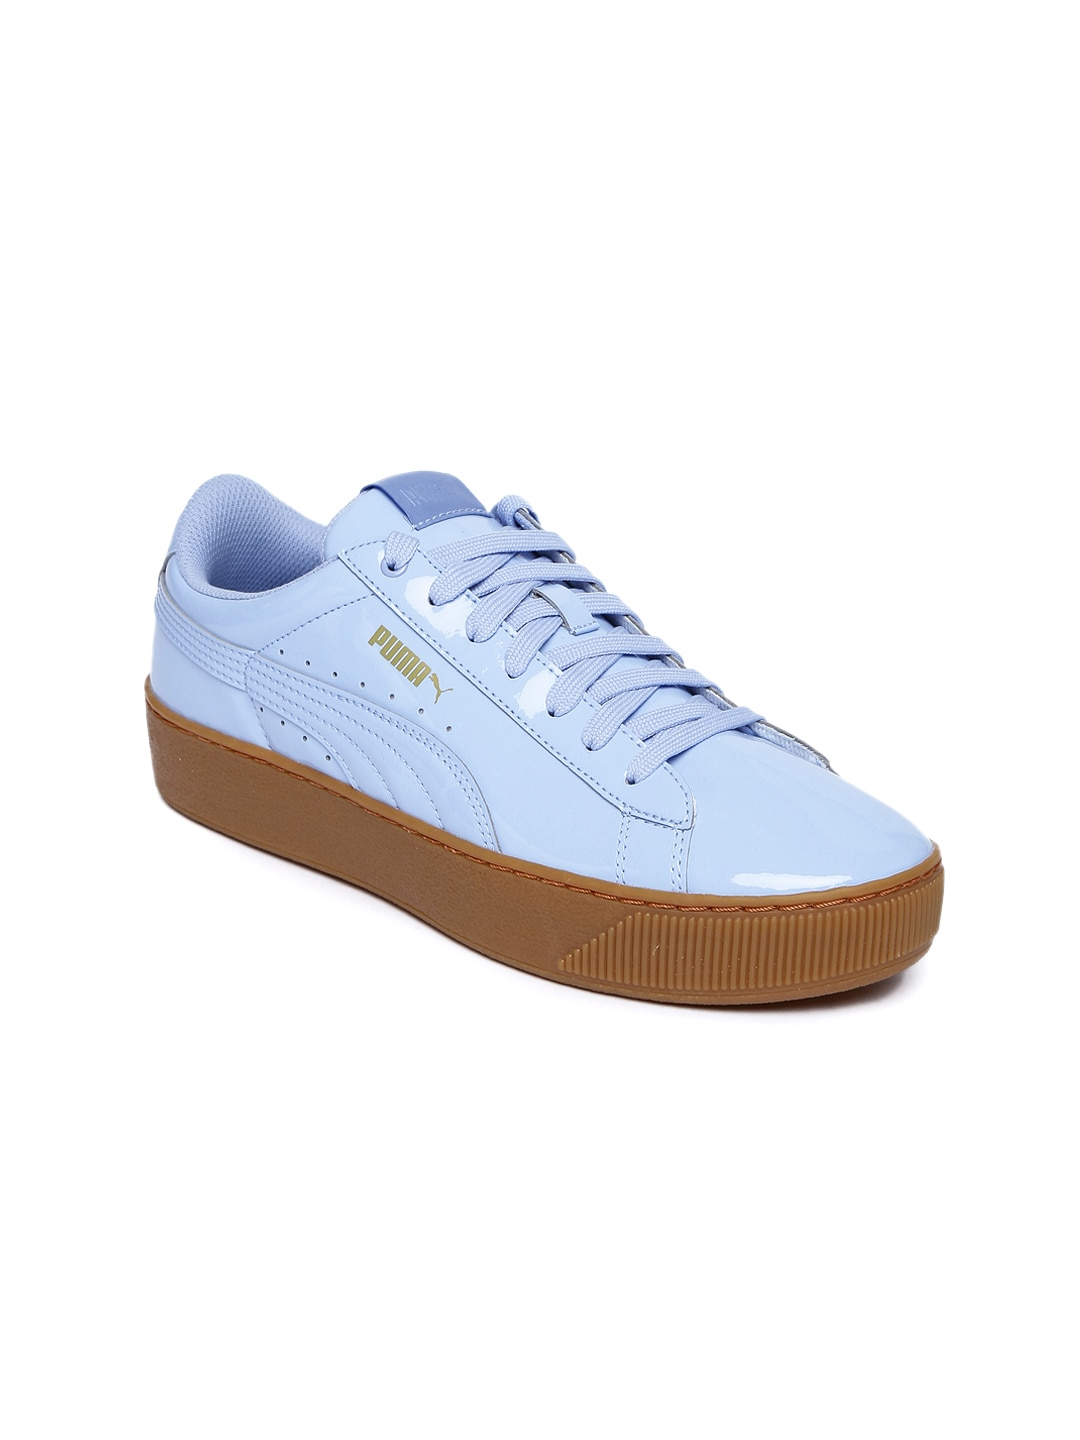 b69ff103a32b Puma Synthetic Leather Casual Shoes - Buy Puma Synthetic Leather Casual  Shoes online in India